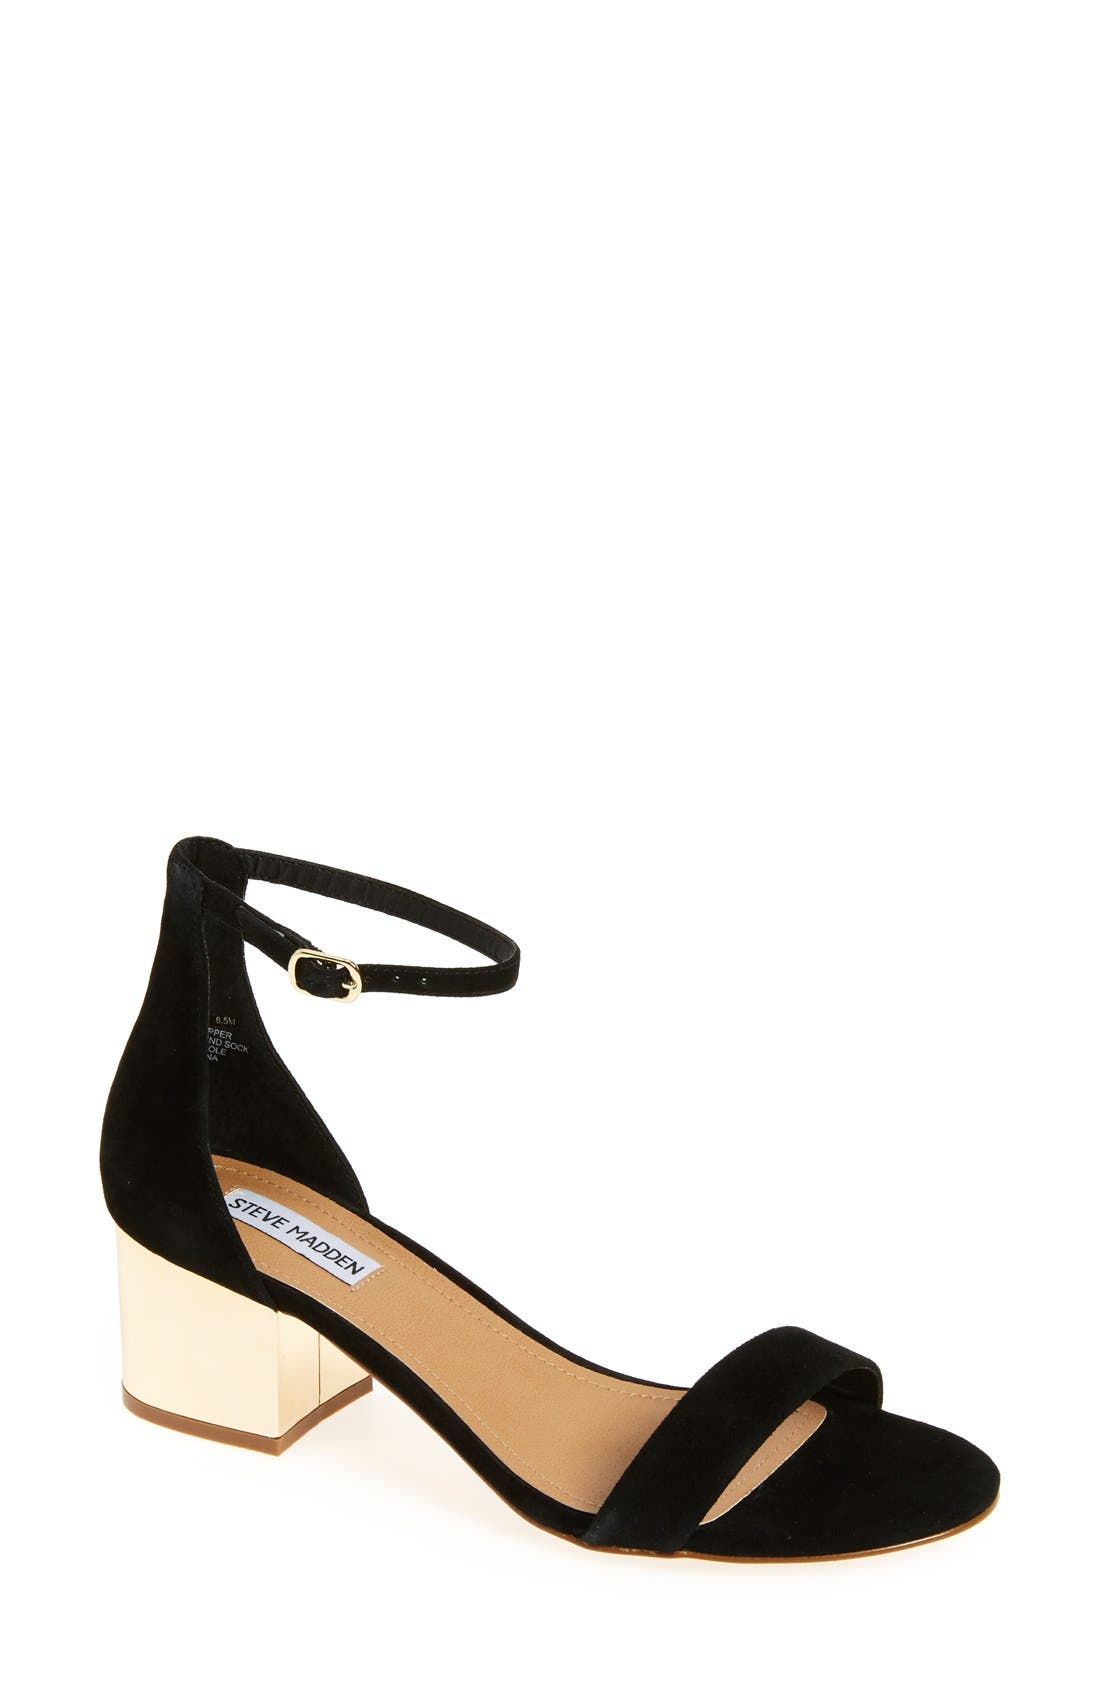 Alternate Image 1 Selected - Steve Madden 'Irenee-G' Mirror Block Heel Sandal (Women)